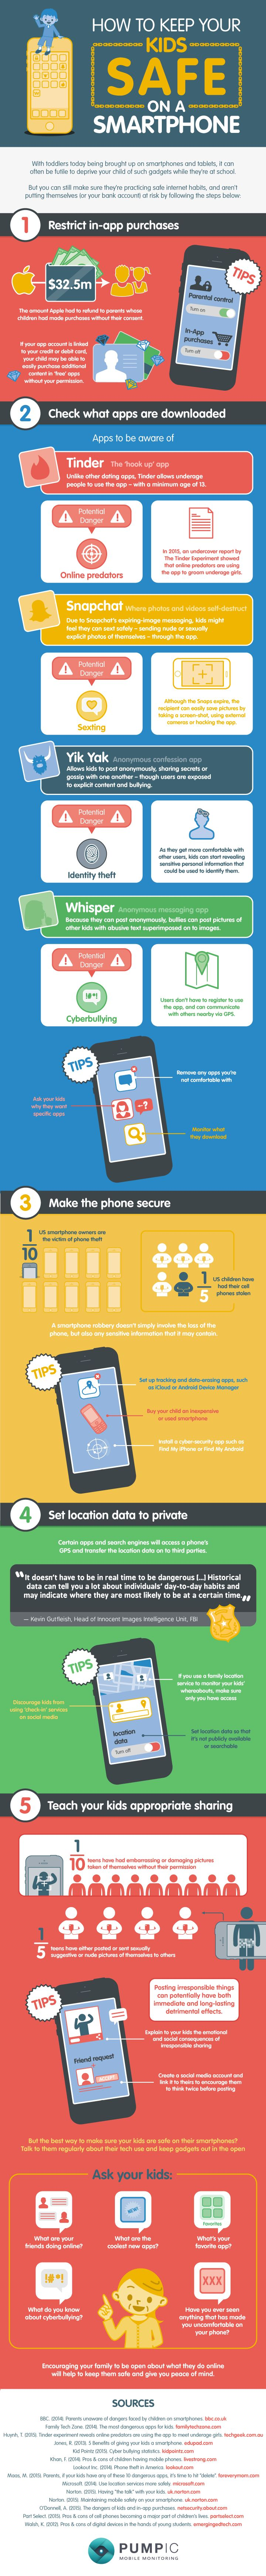 How to keep your kids sage on a smartphone! A cheat sheet for parents.